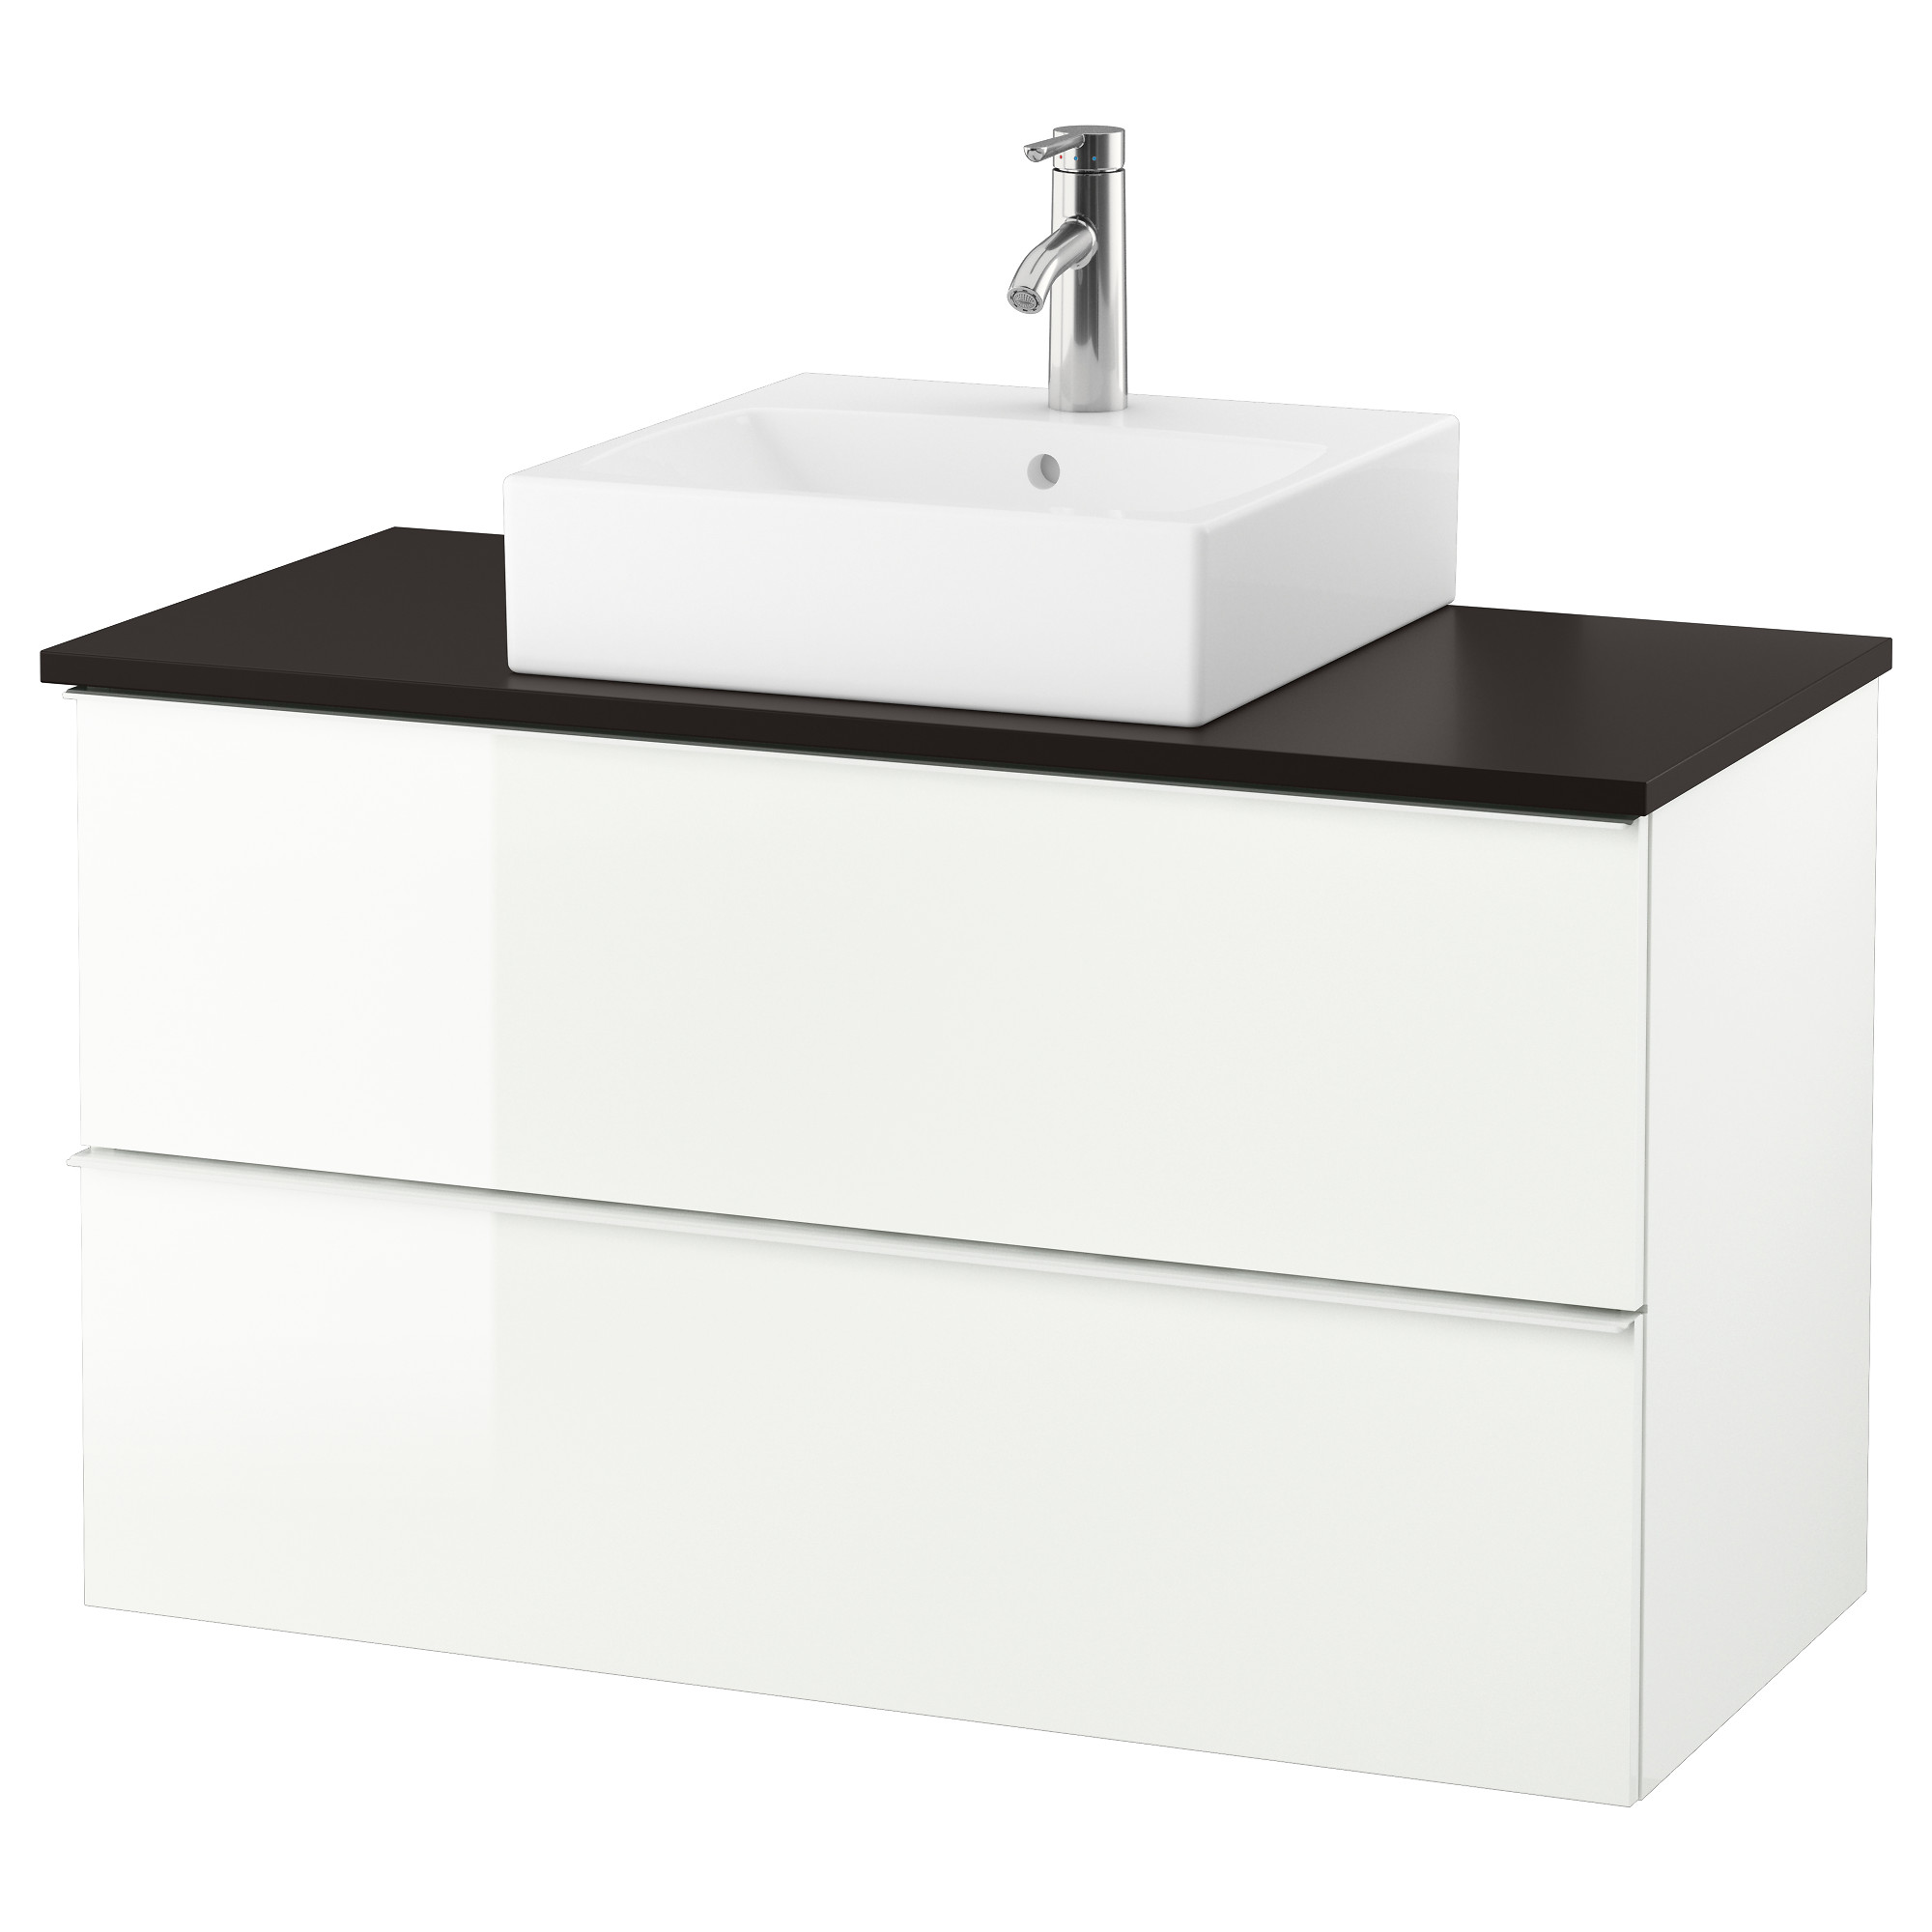 Bathroom sink cabinets white - Godmorgon Tolken T Rnviken Vanity Countertop And 17 3 4 Sink